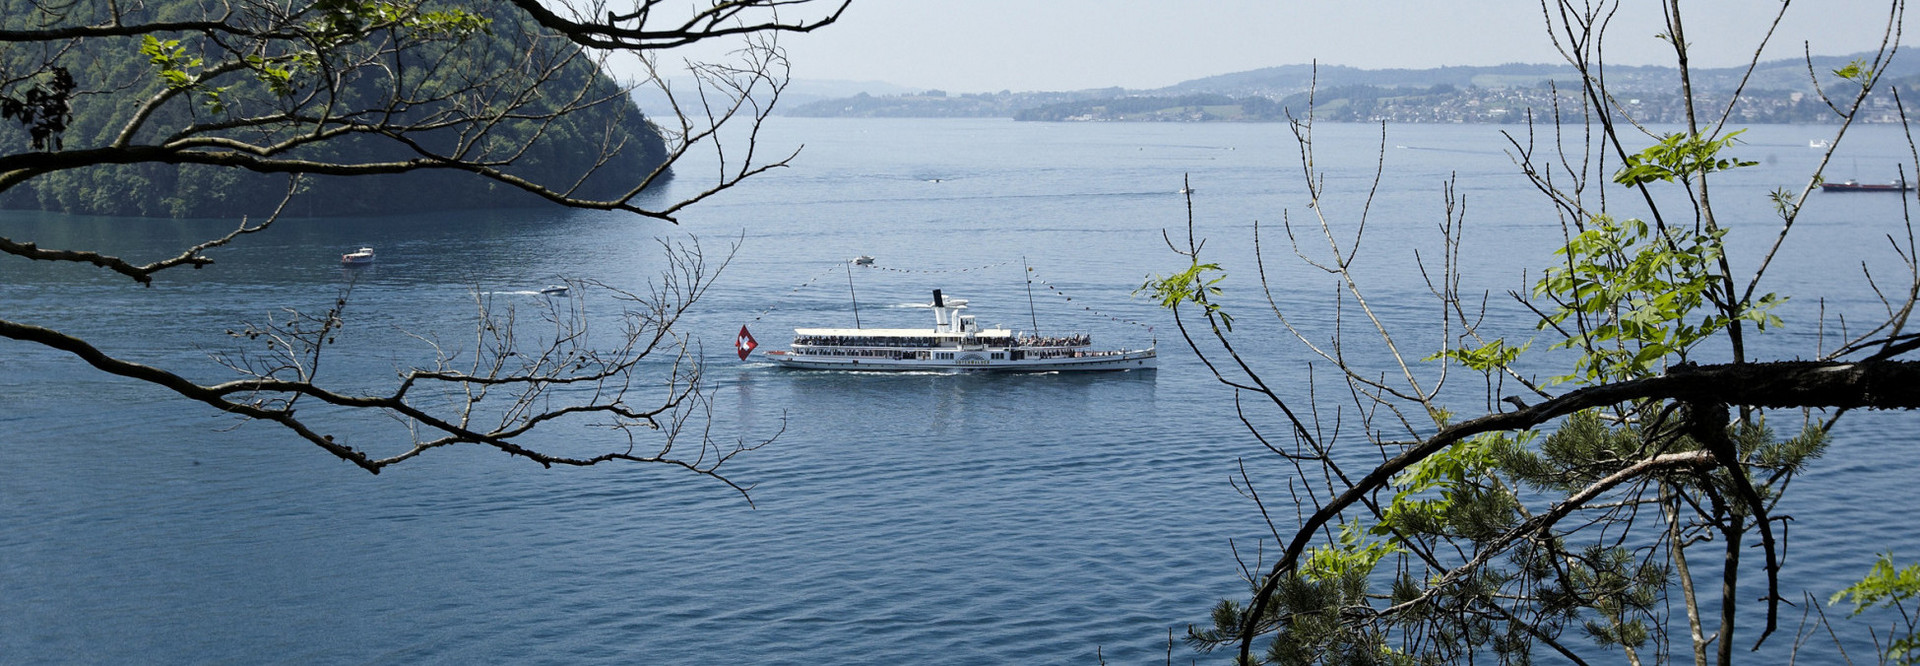 Lake Lucerne Pass: Steamboat Unterwalden is sailing on Lake Lucerne in summer. Elevated view of the steamboat, branches from a tree can be seen on the right and left of the picture.